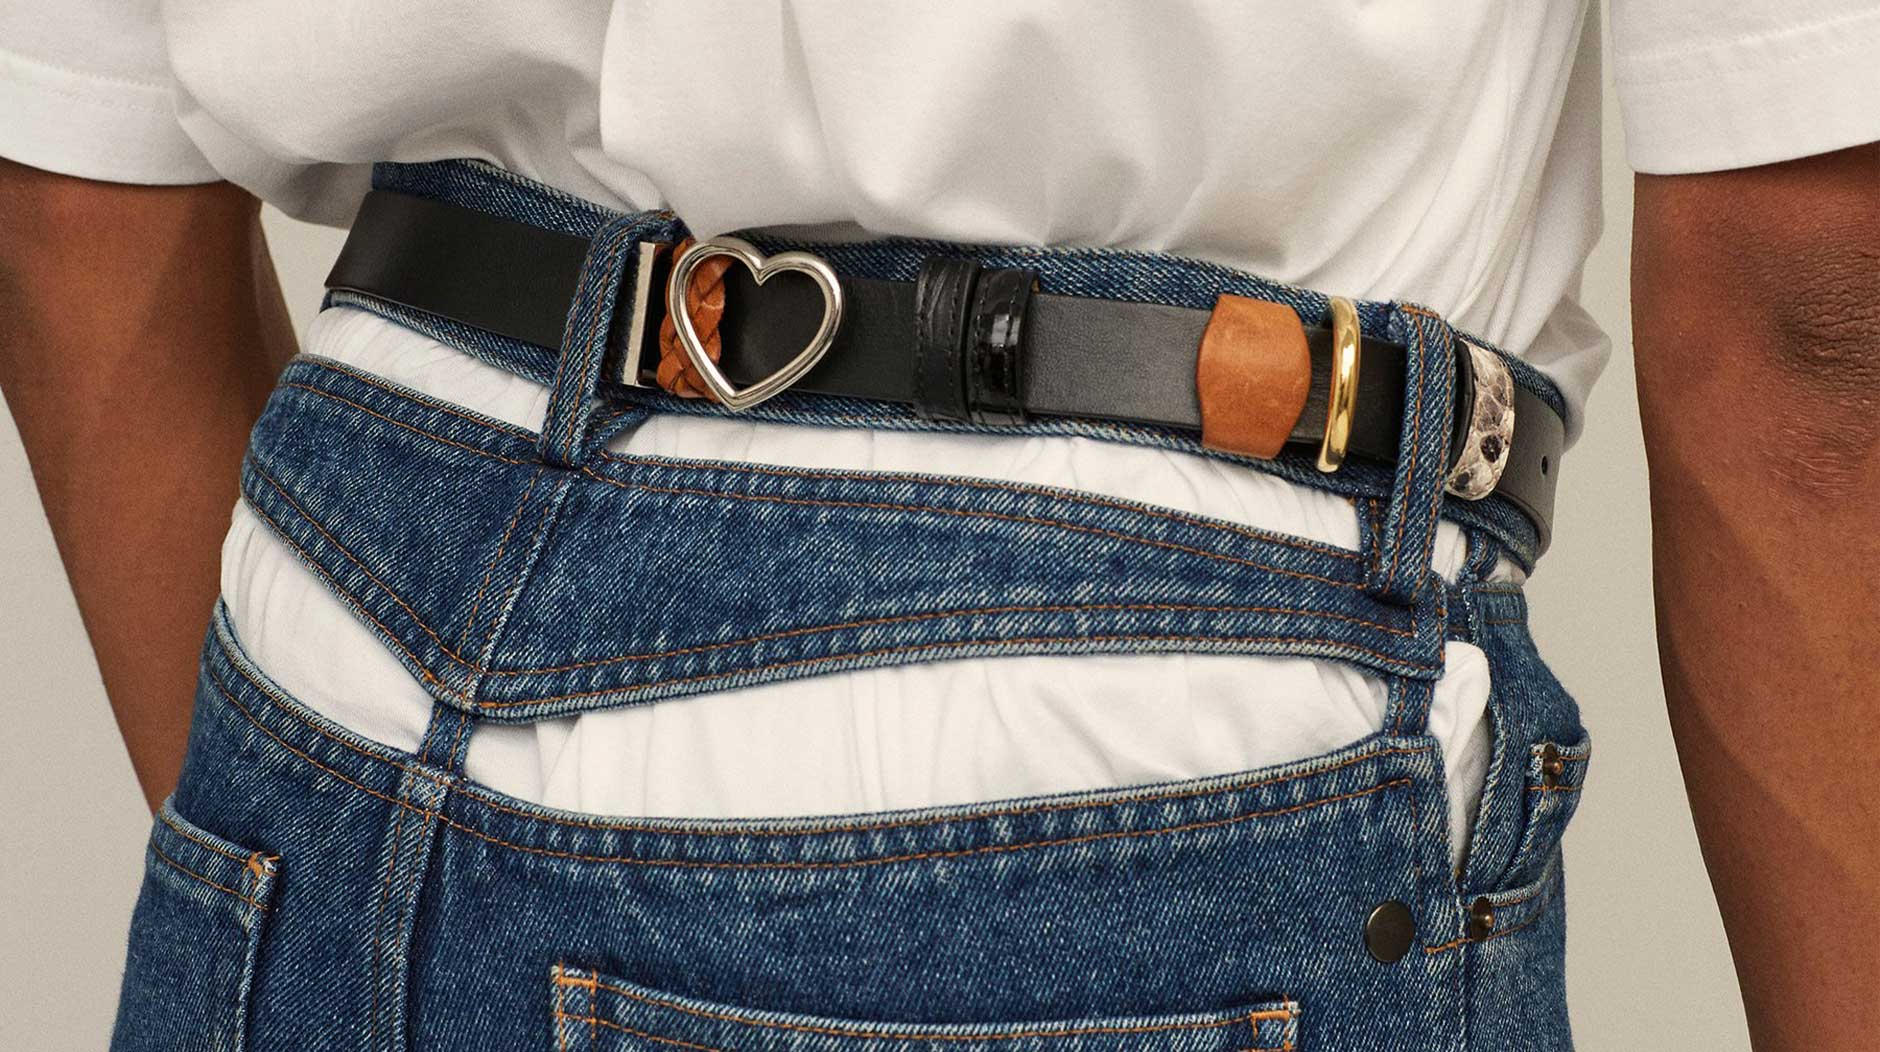 Y/Project Denim jeans with slashed cuts in the waist area